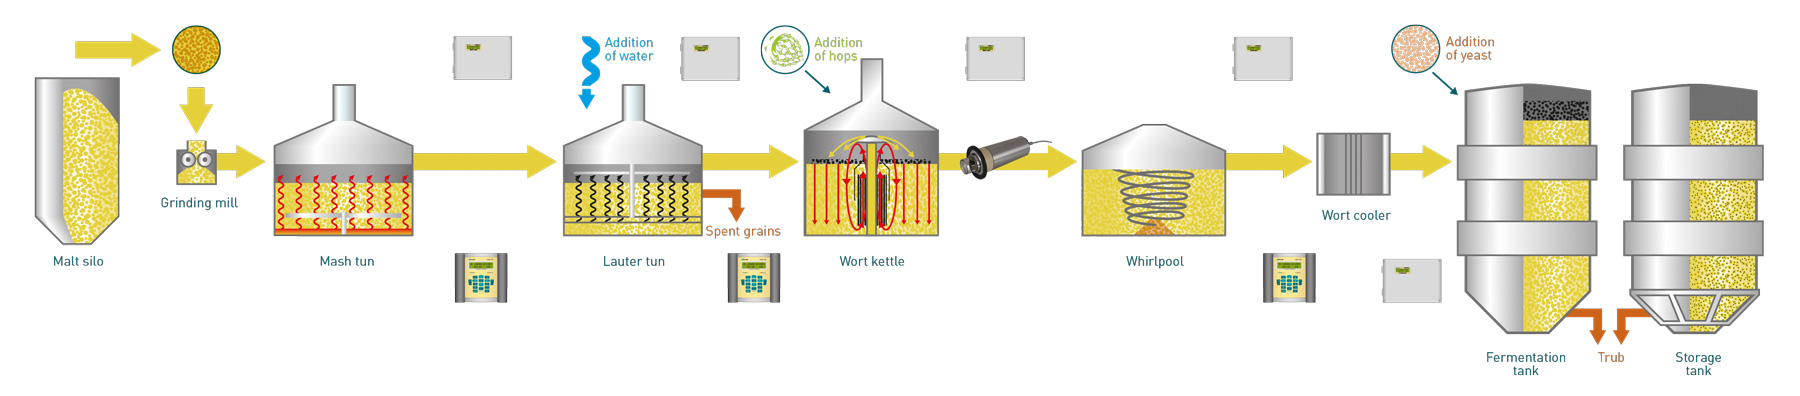 Flow and Thermal Energy Measurements in the Beer Brewing